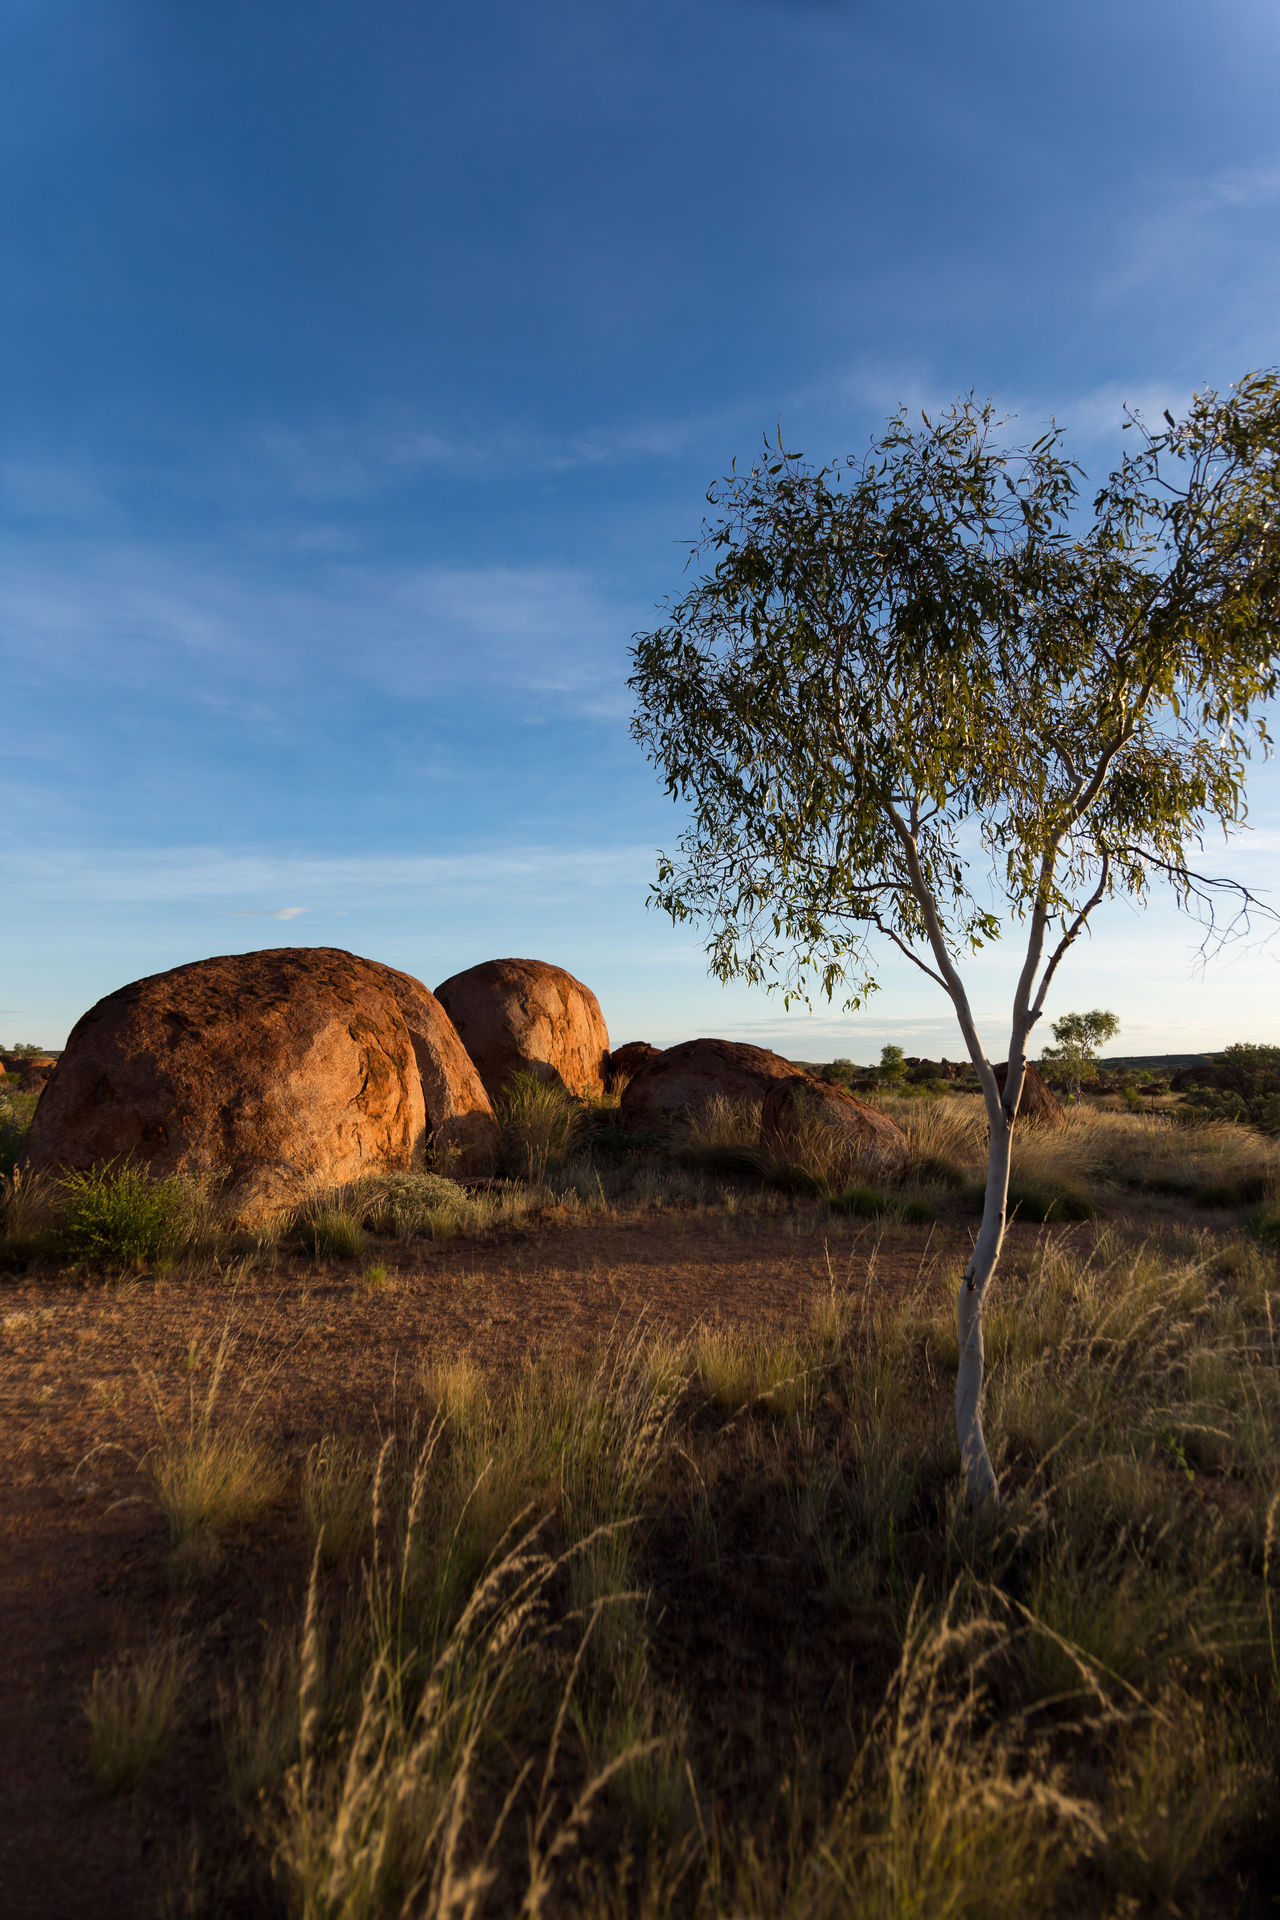 Sunset at the Devils Marbles, Australia. Incredible atmosphere between those unreal rock formations. They look as if they are burning in the sunlight. Bare Tree Beauty In Nature Day Devils Marbles Grass Karlu Karlu Landscape Light And Shadow Nature No People Outdoors Rock - Object Rock Formation Scenics Sky Sunset Tranquil Scene Tranquility Tree